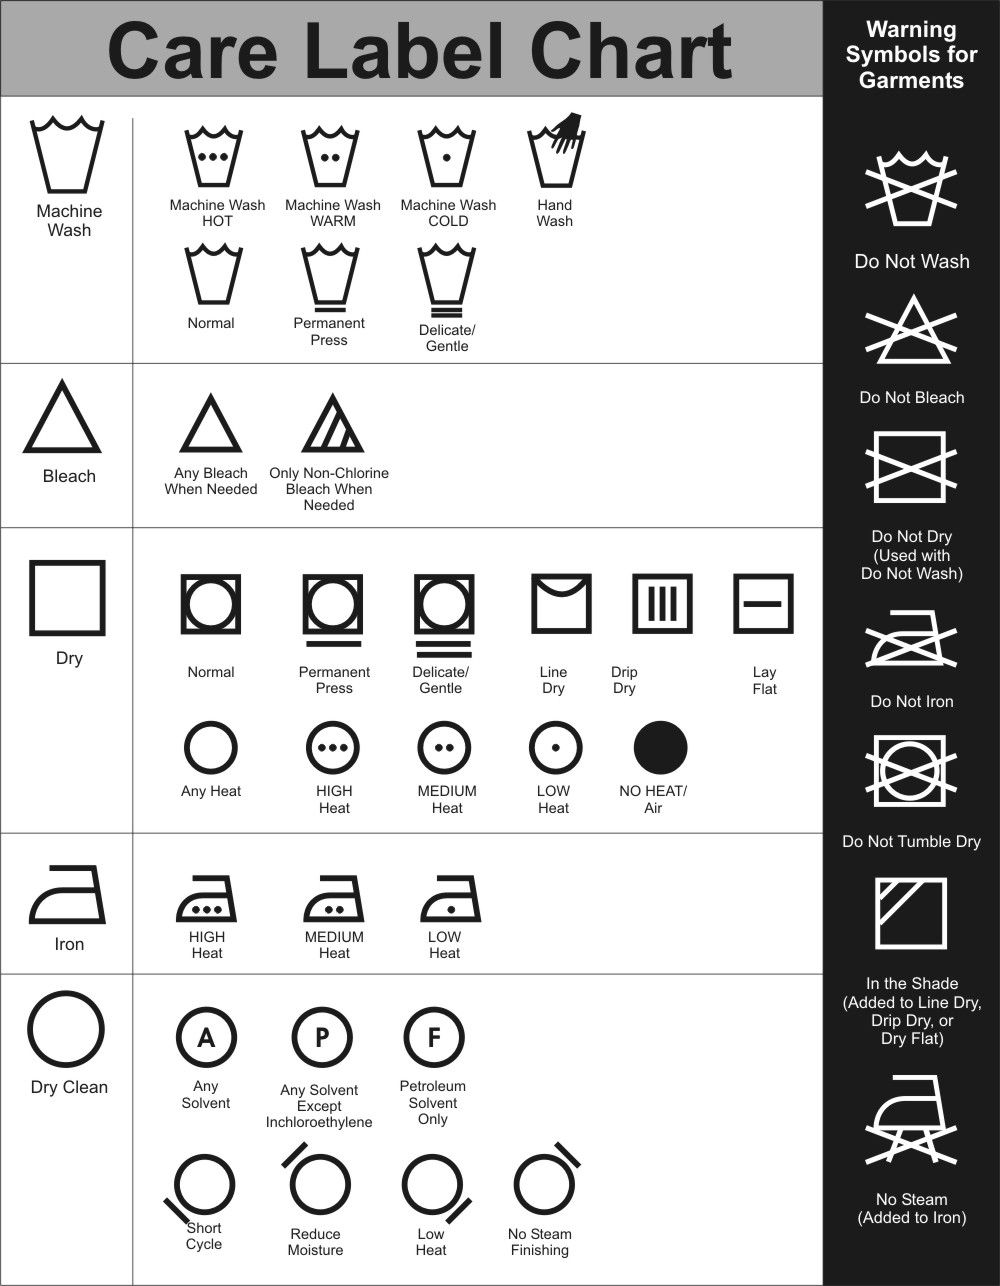 Dry Cleaning Symbols Never Knew There Were So Many Symbols Lol